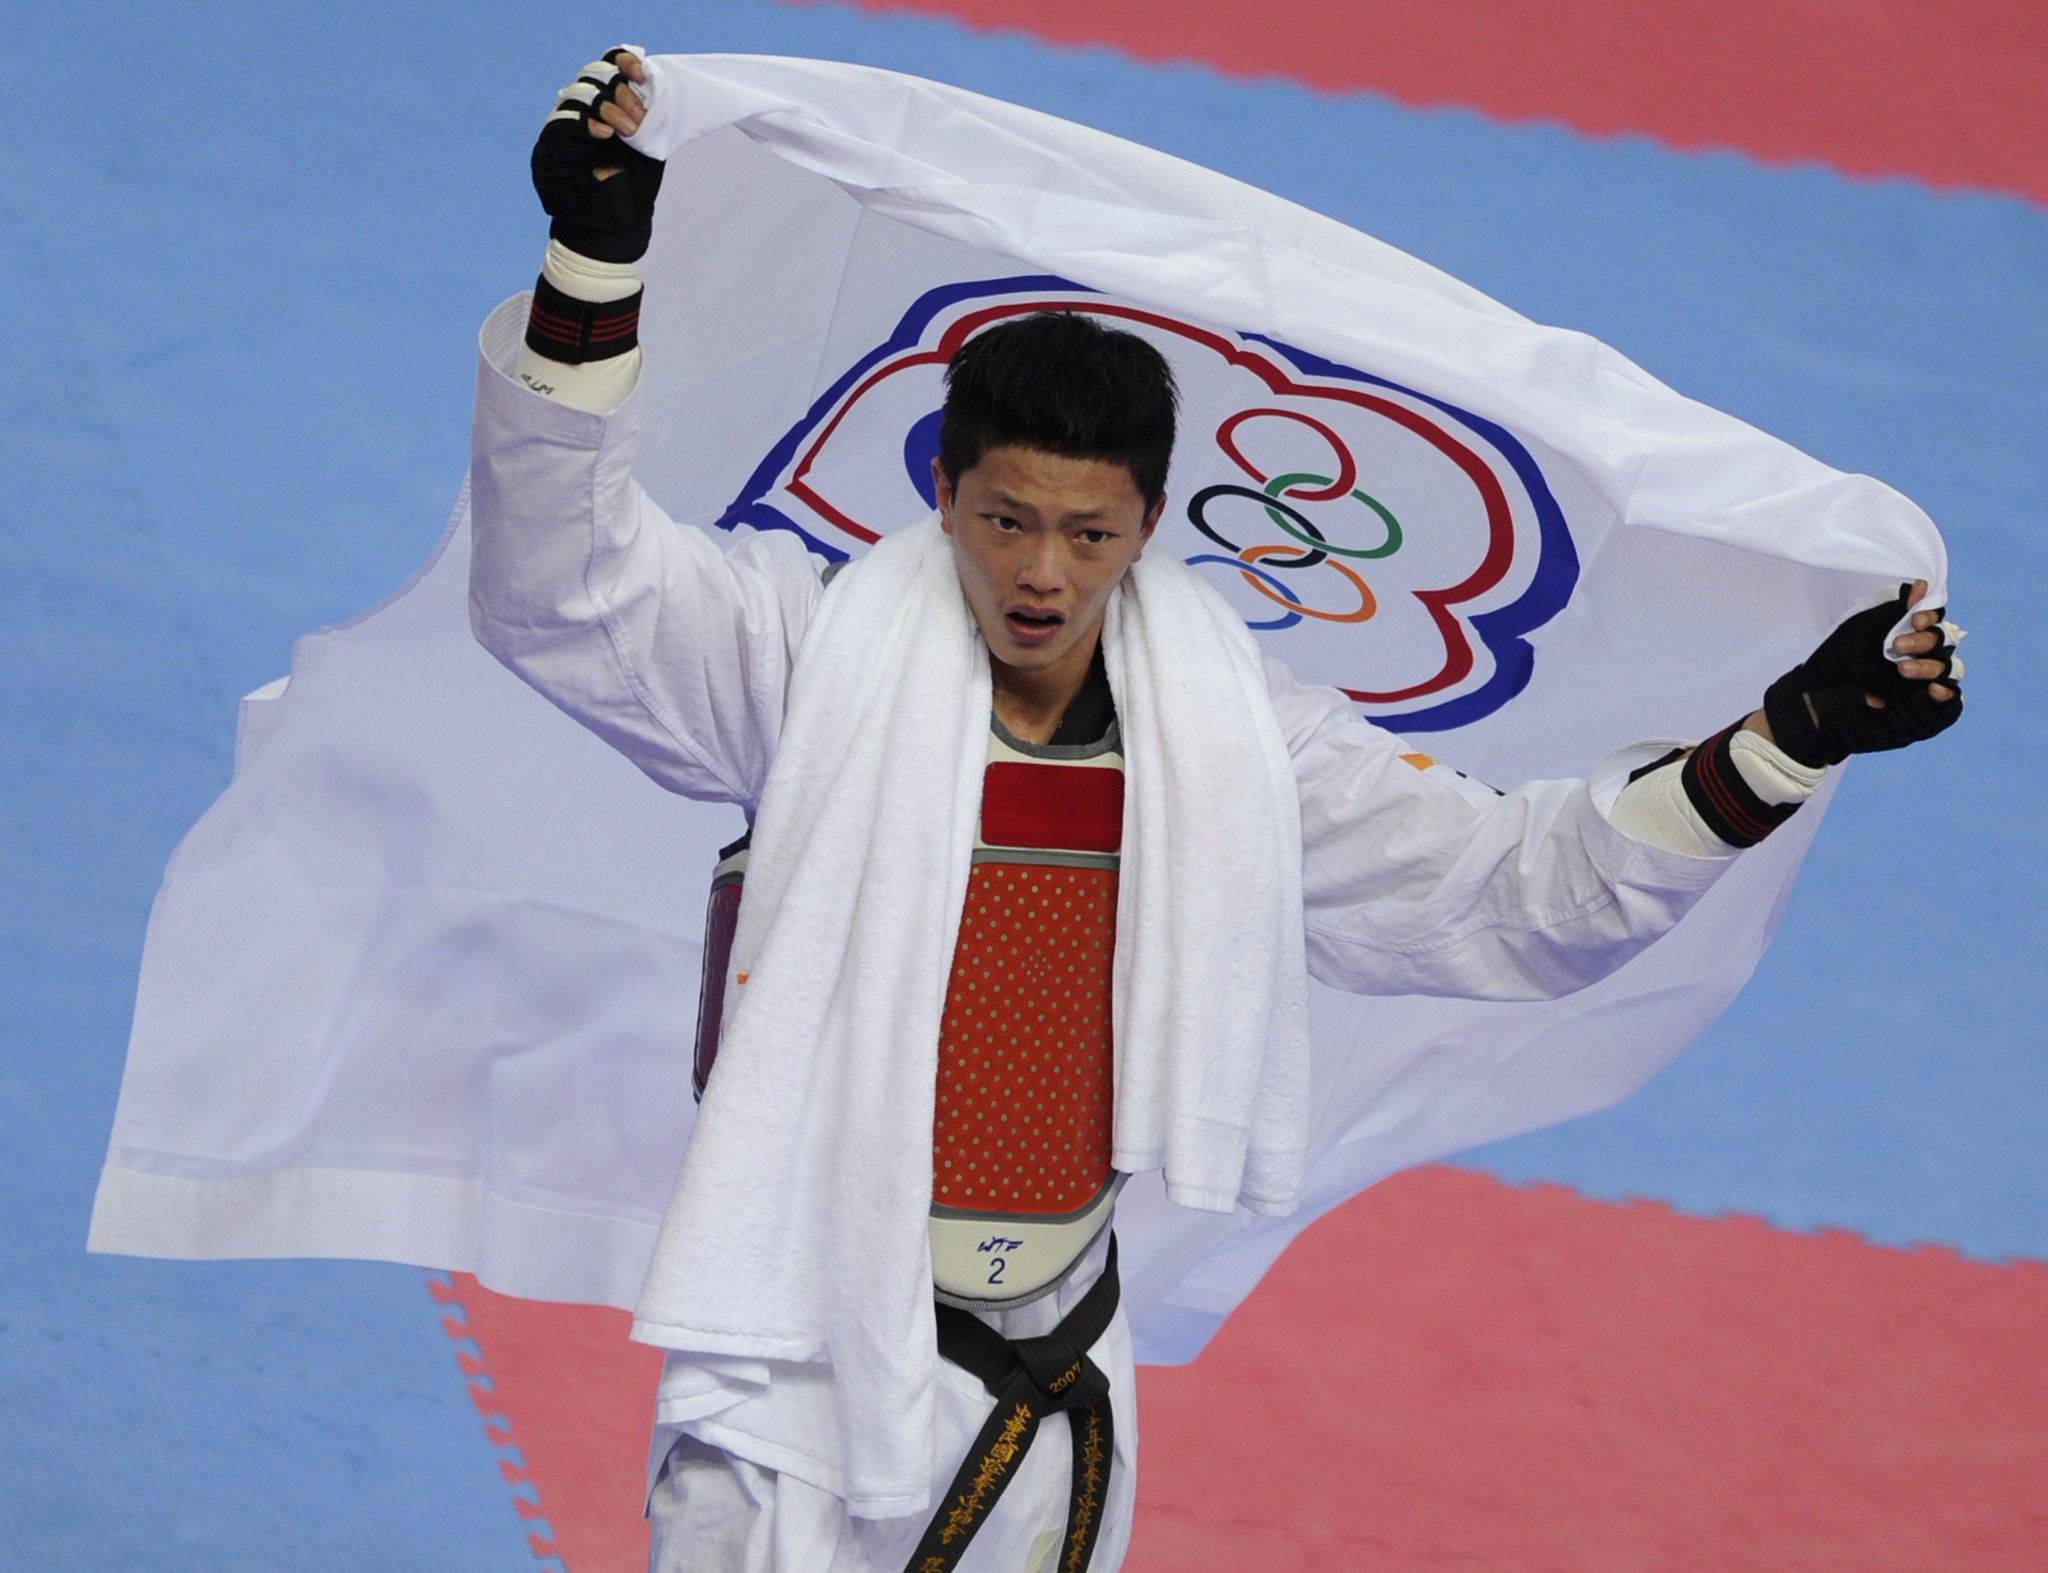 Former Asian Games taekwondo champion Wei arrested for drug possession